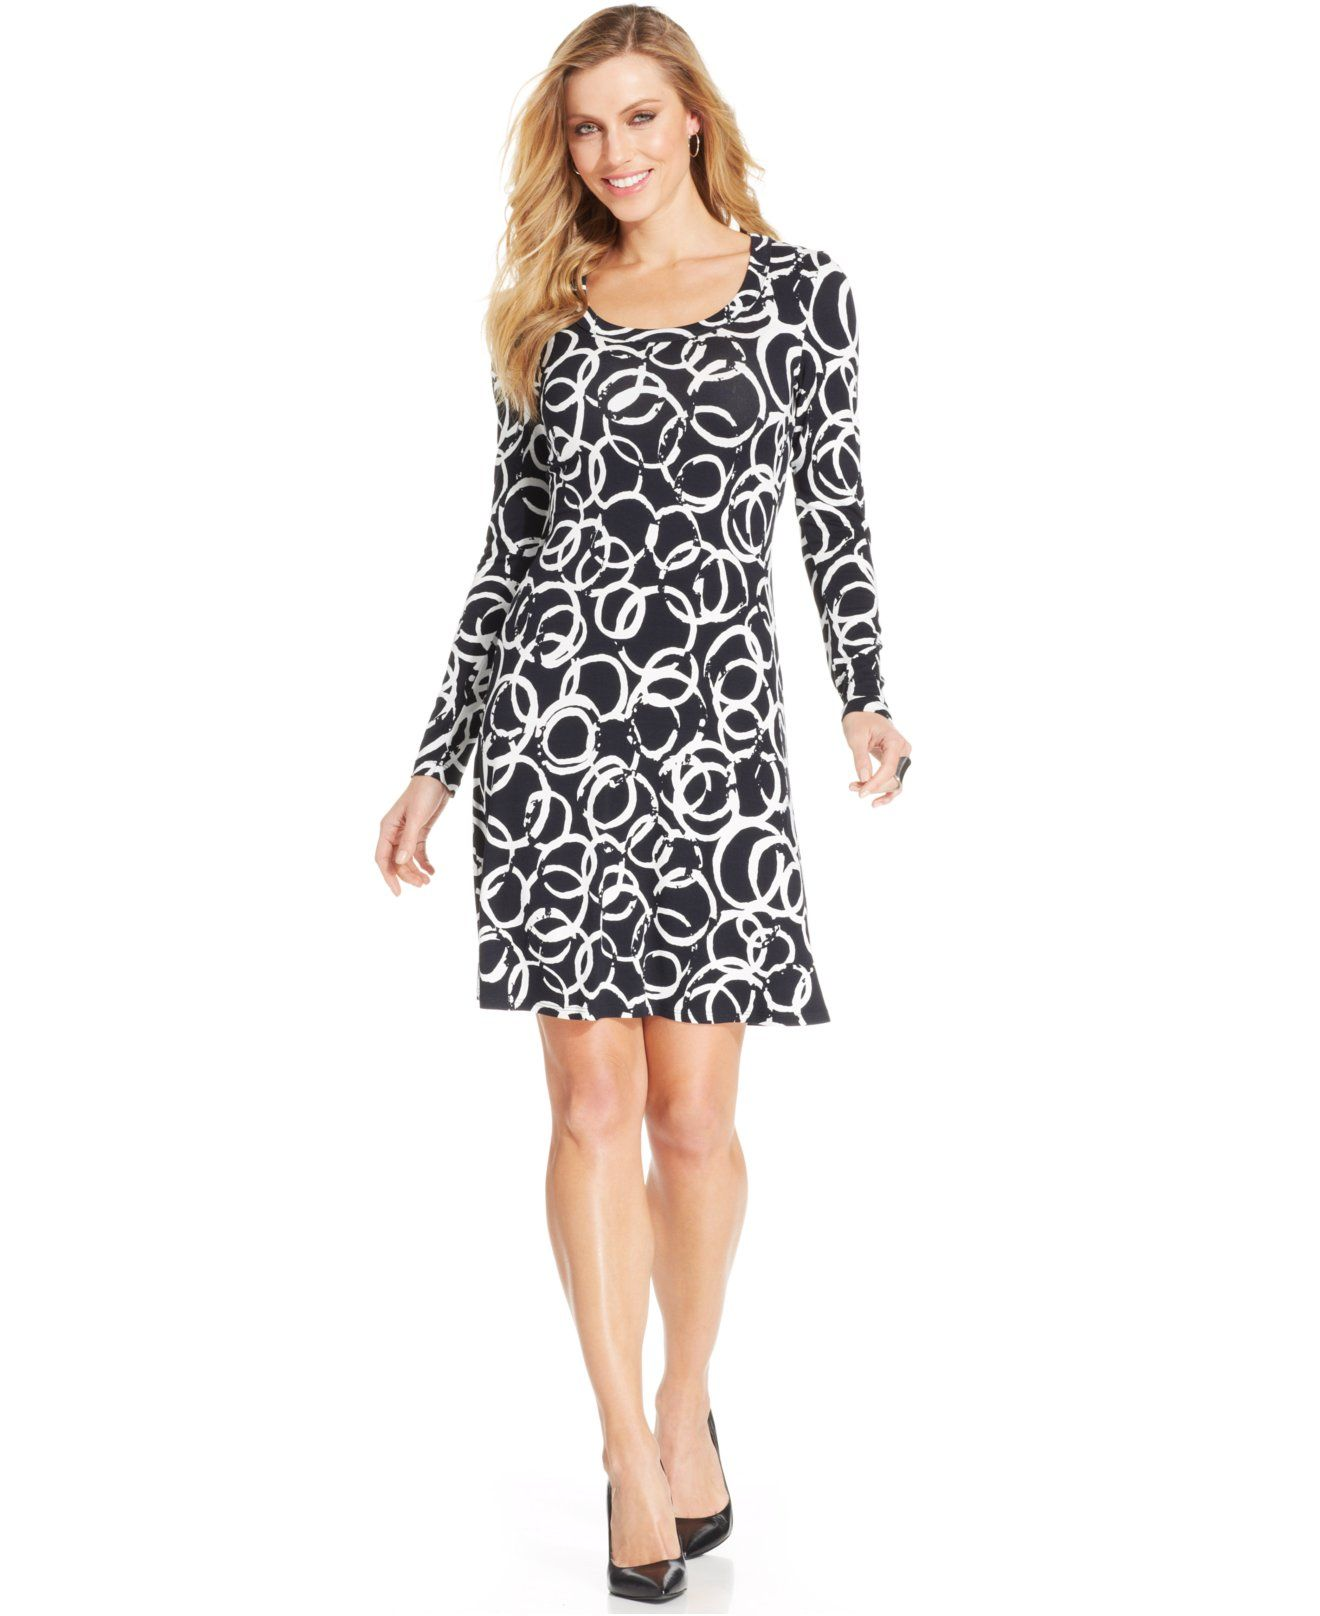 Karen Kane Black and White Printed A Line Dress - Dresses - Women ...